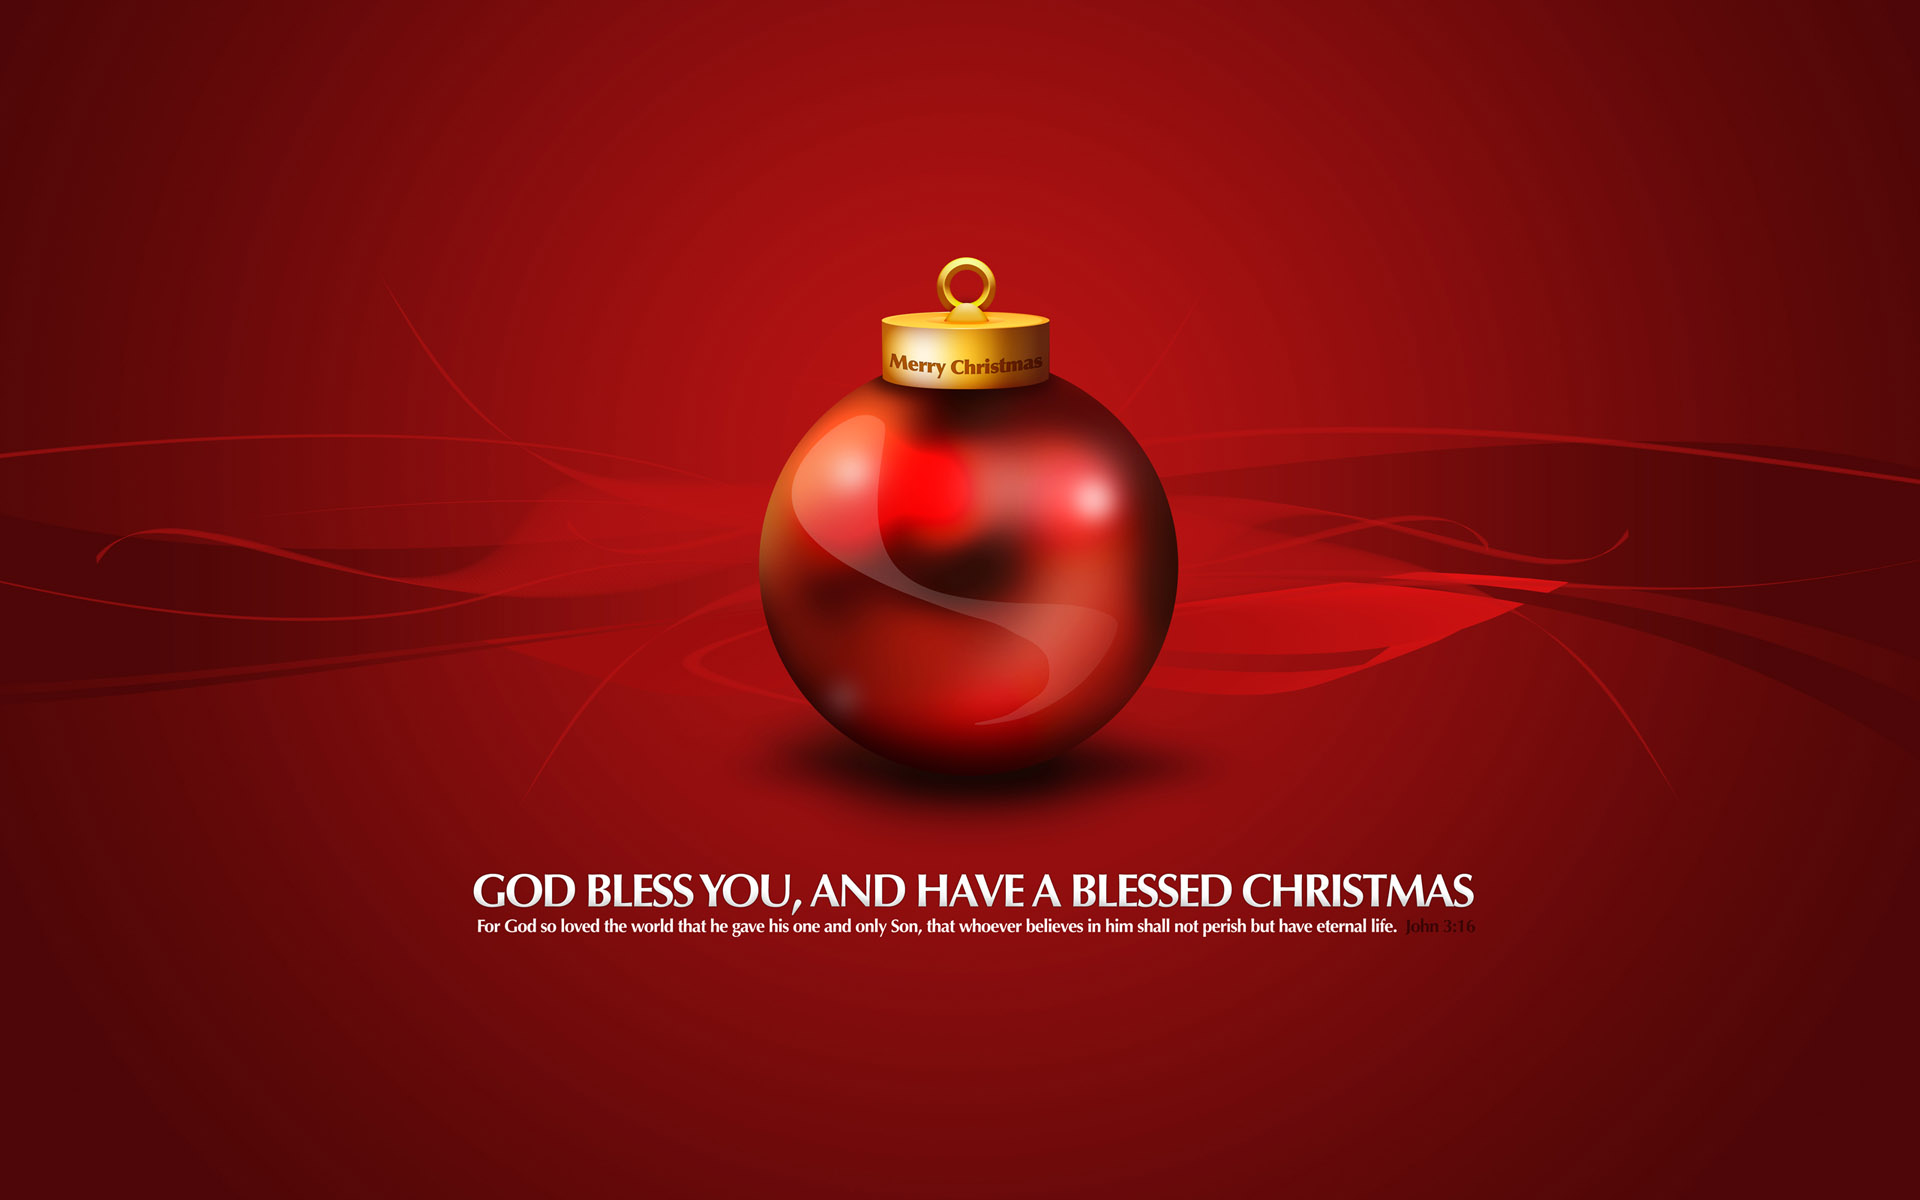 God Bless You Merry Chirstmas